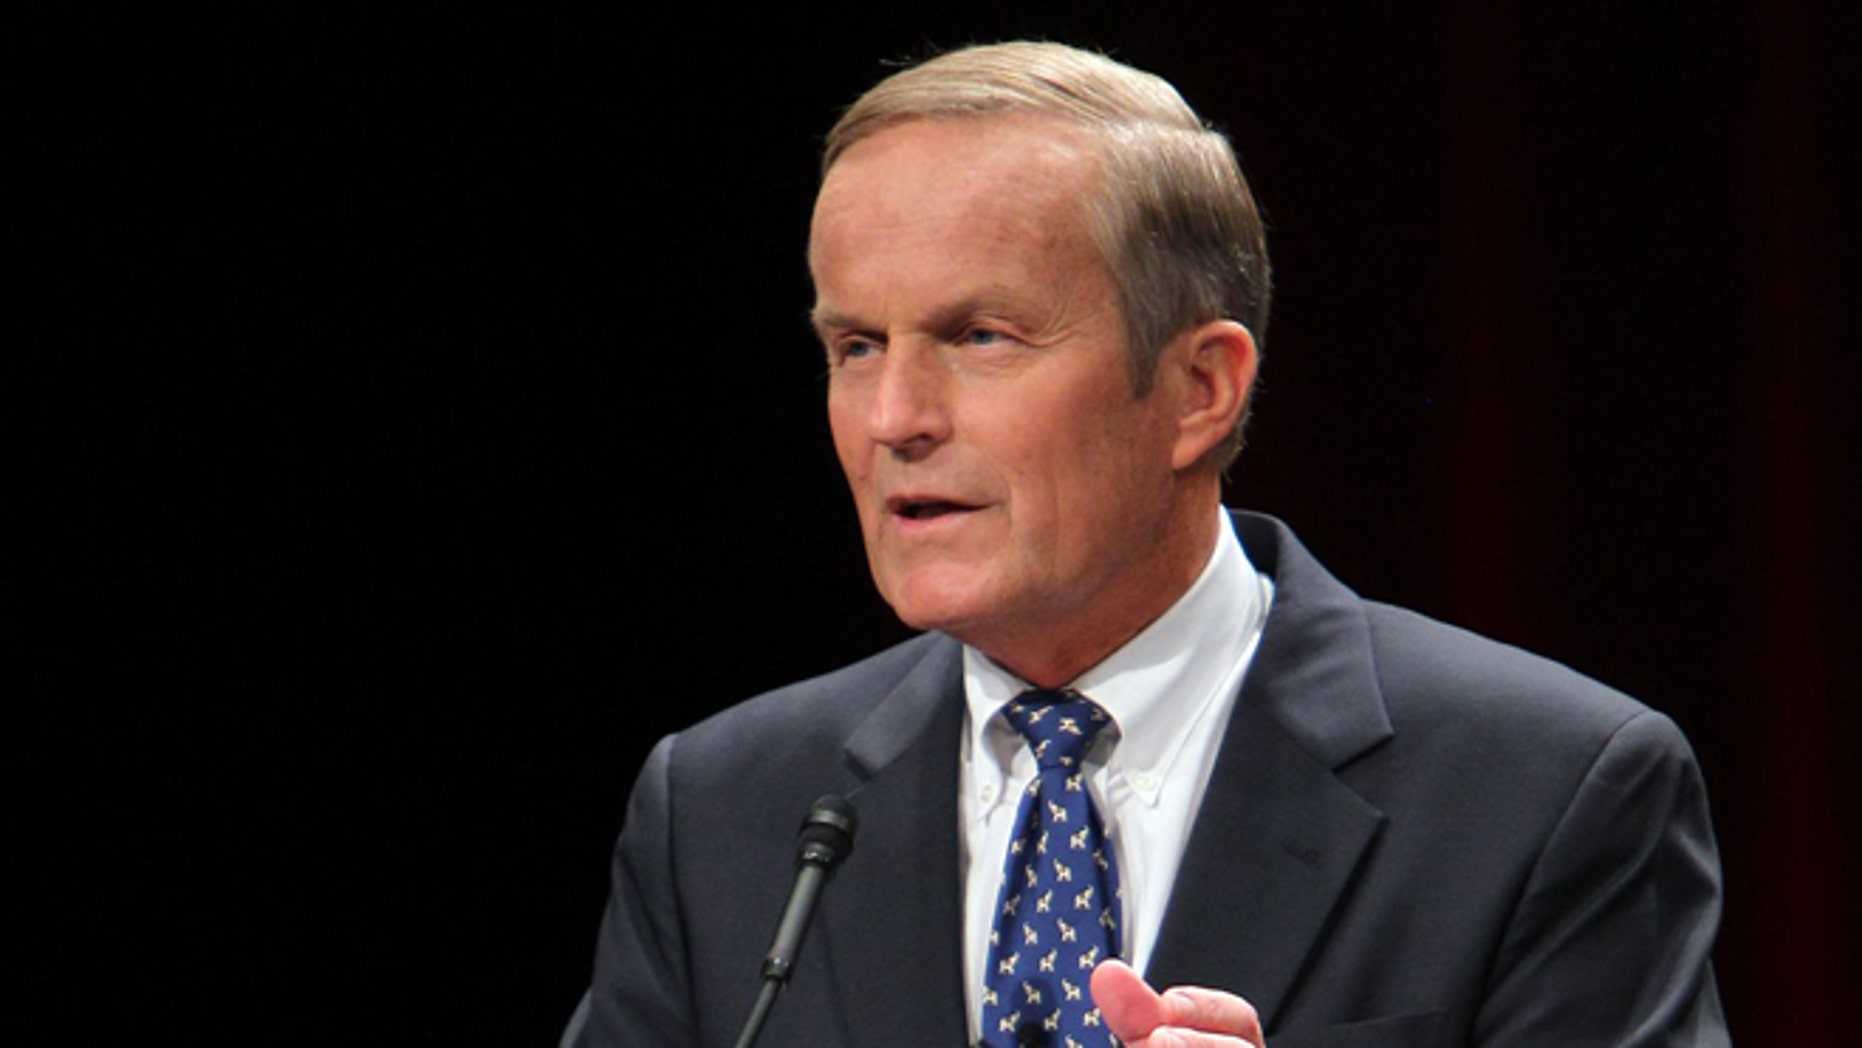 June 11, 2011: In this file photo , U.S. Representative Todd Akin answers a question from the panel during a debate among Republican Senate candidate hopefuls at the Lindenwood University J. Scheidegger Center's Bezemes Family Theater in St. Charles, Mo.